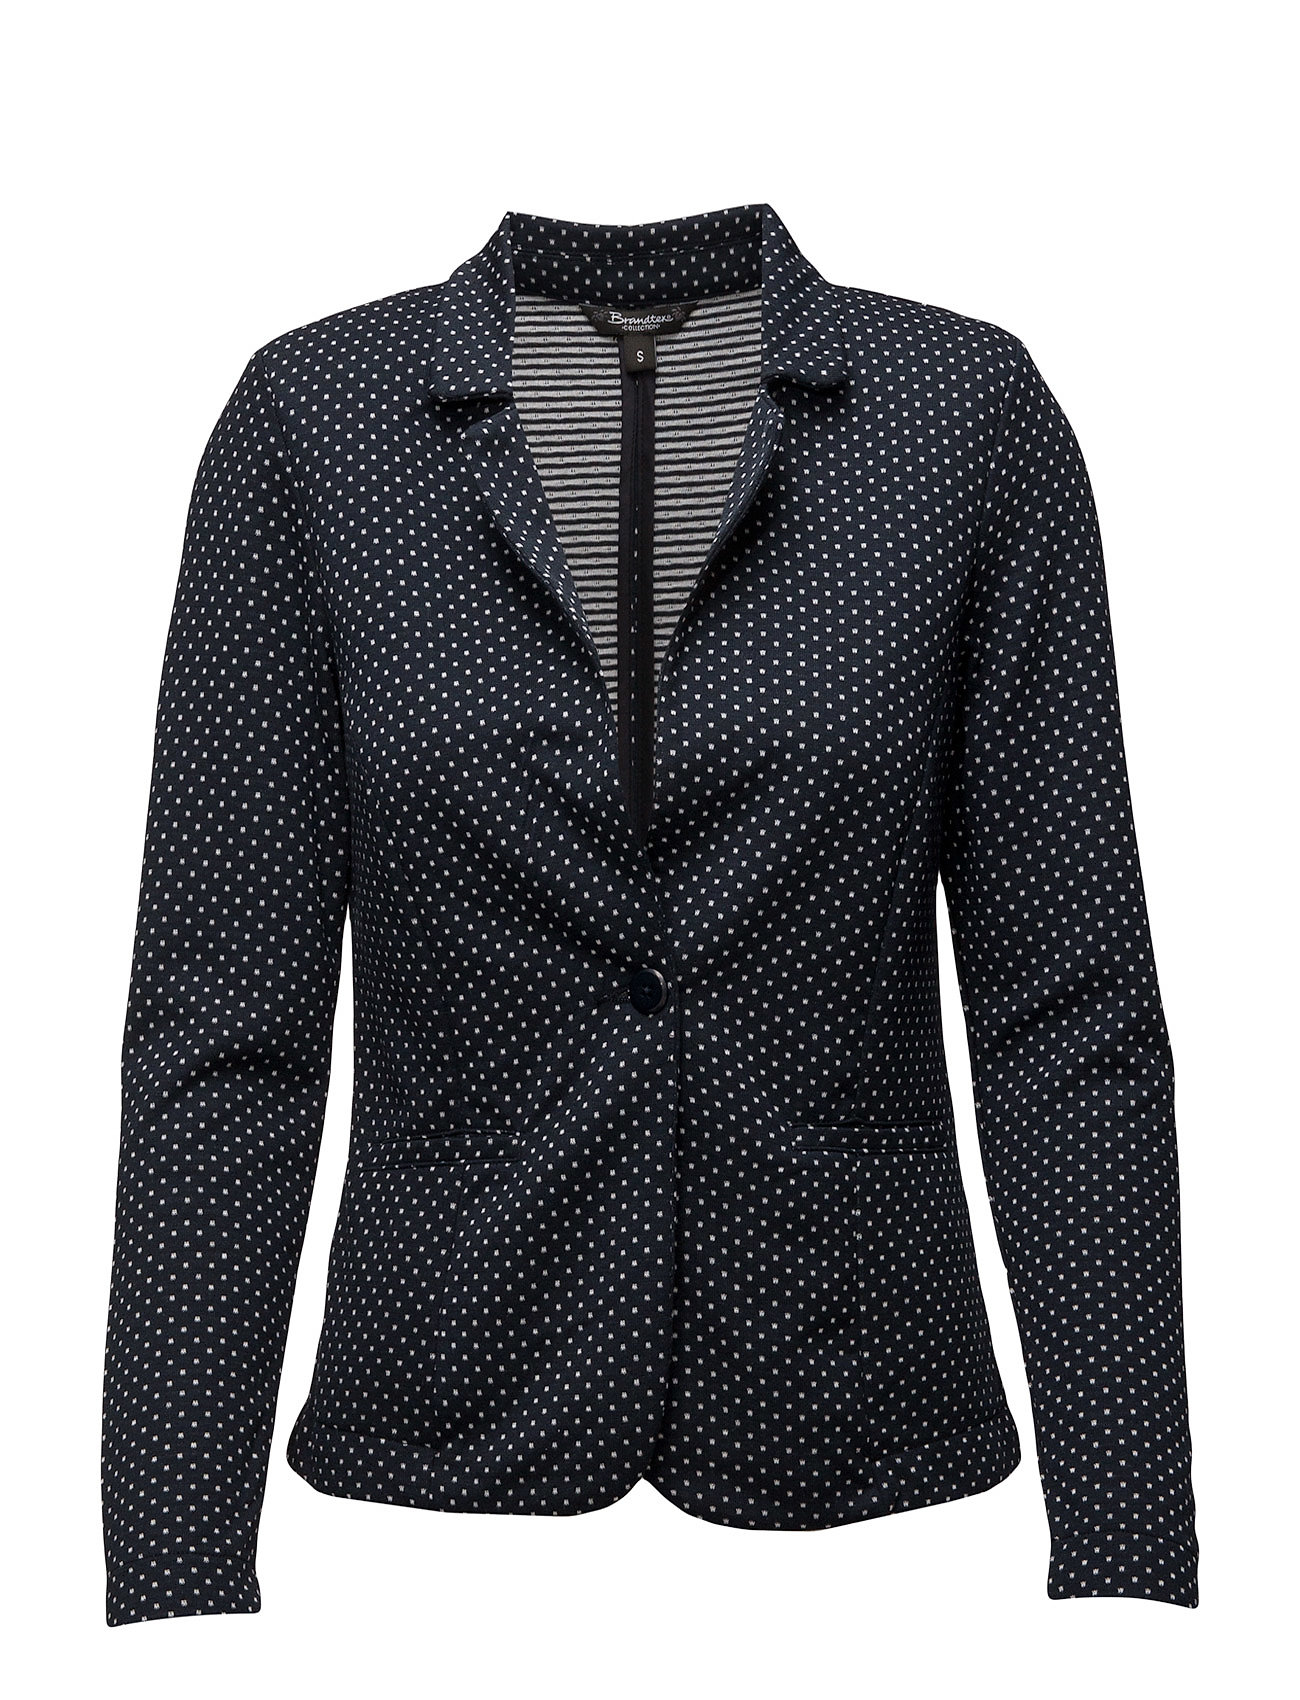 Blazer Brandtex Blazere til Damer i Midnight Blue